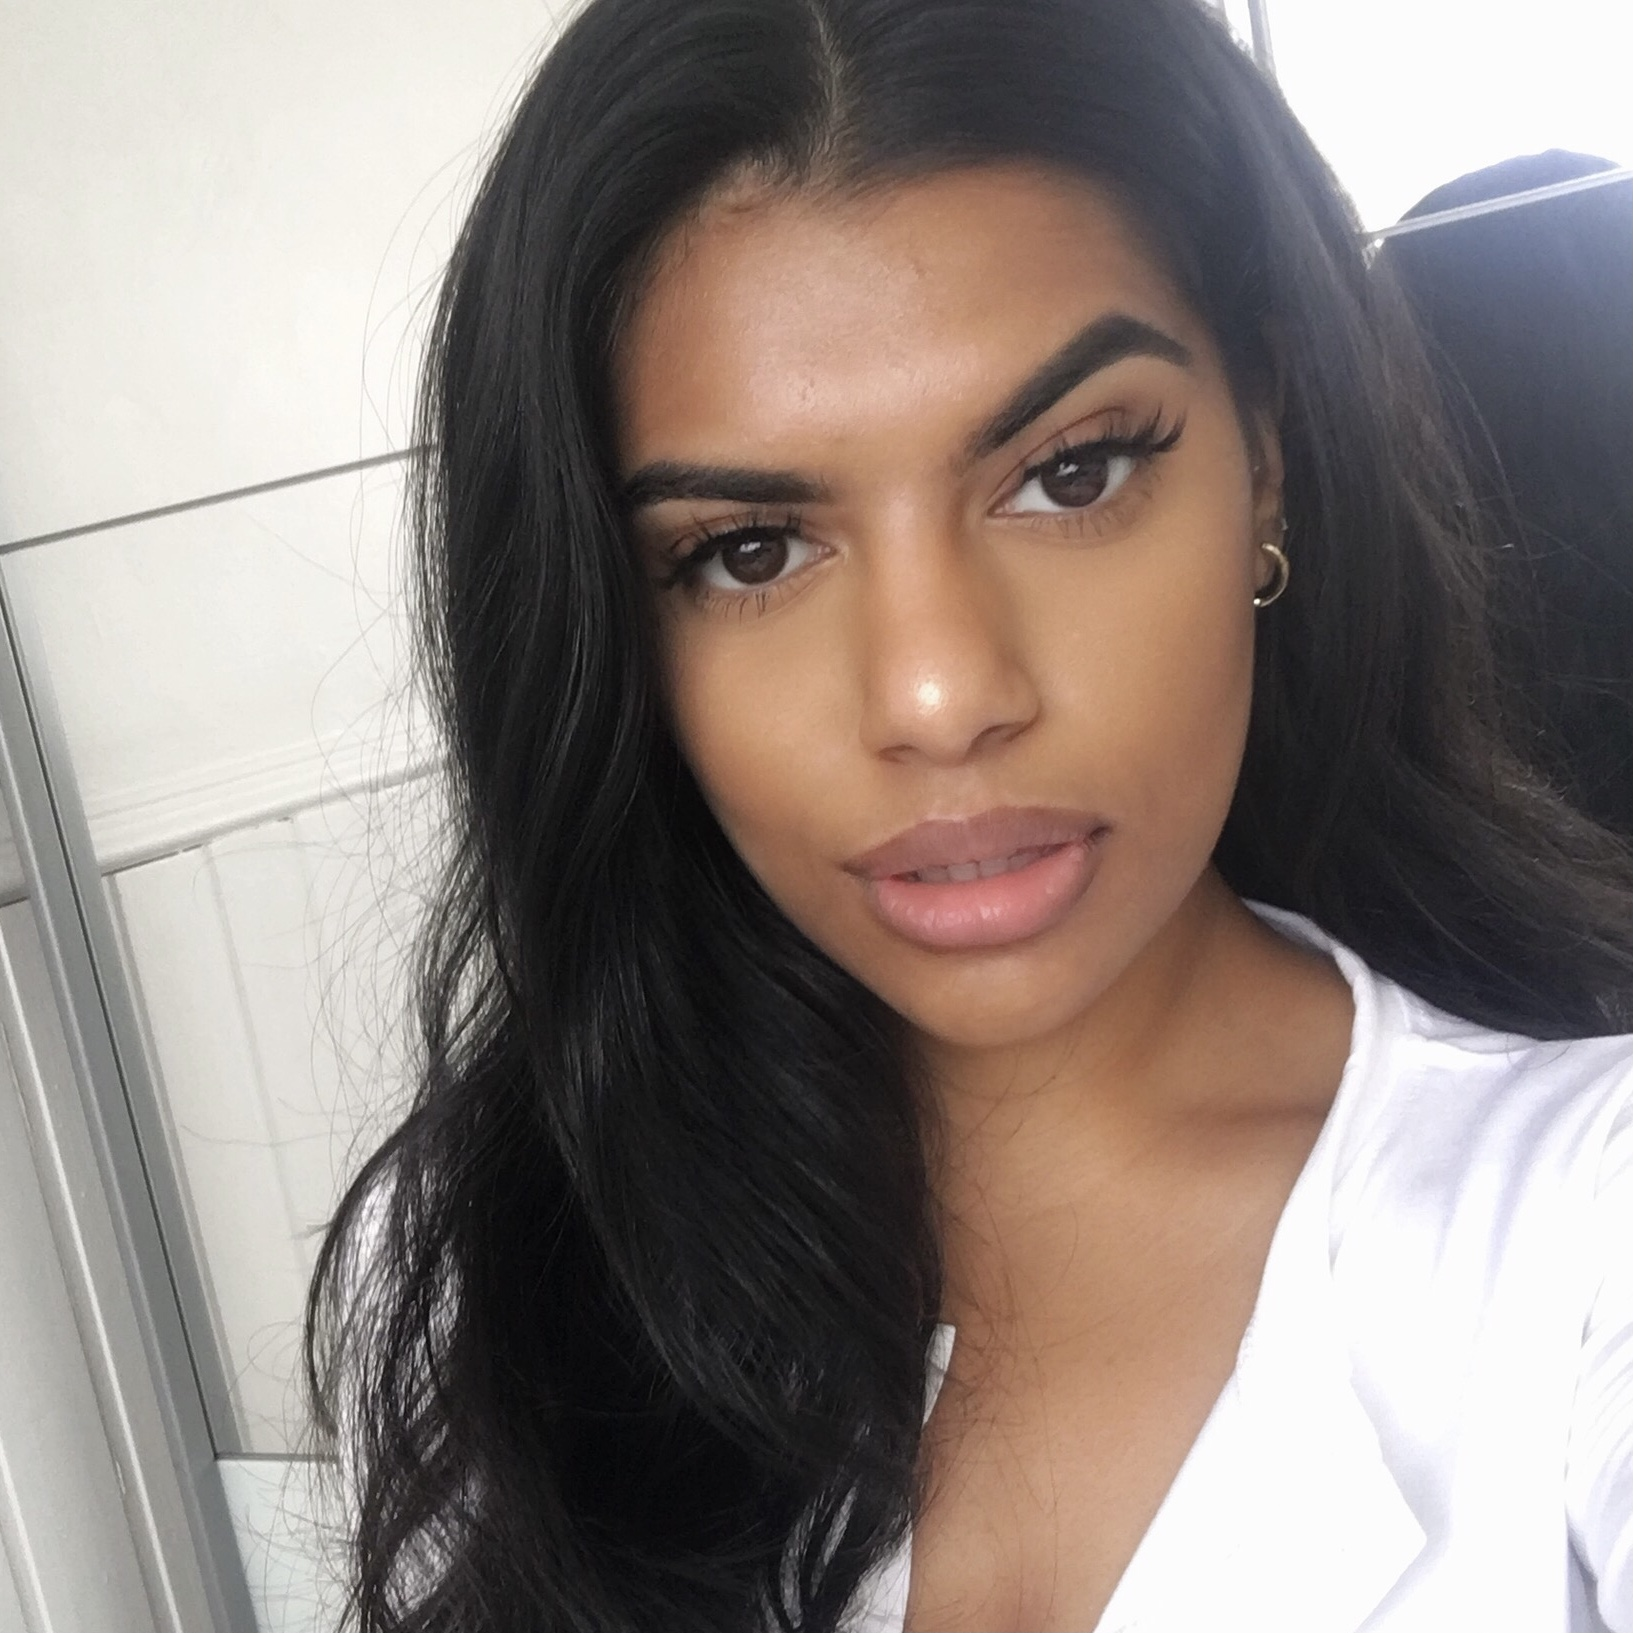 Dalisha looking directly into the camera wearing a white top